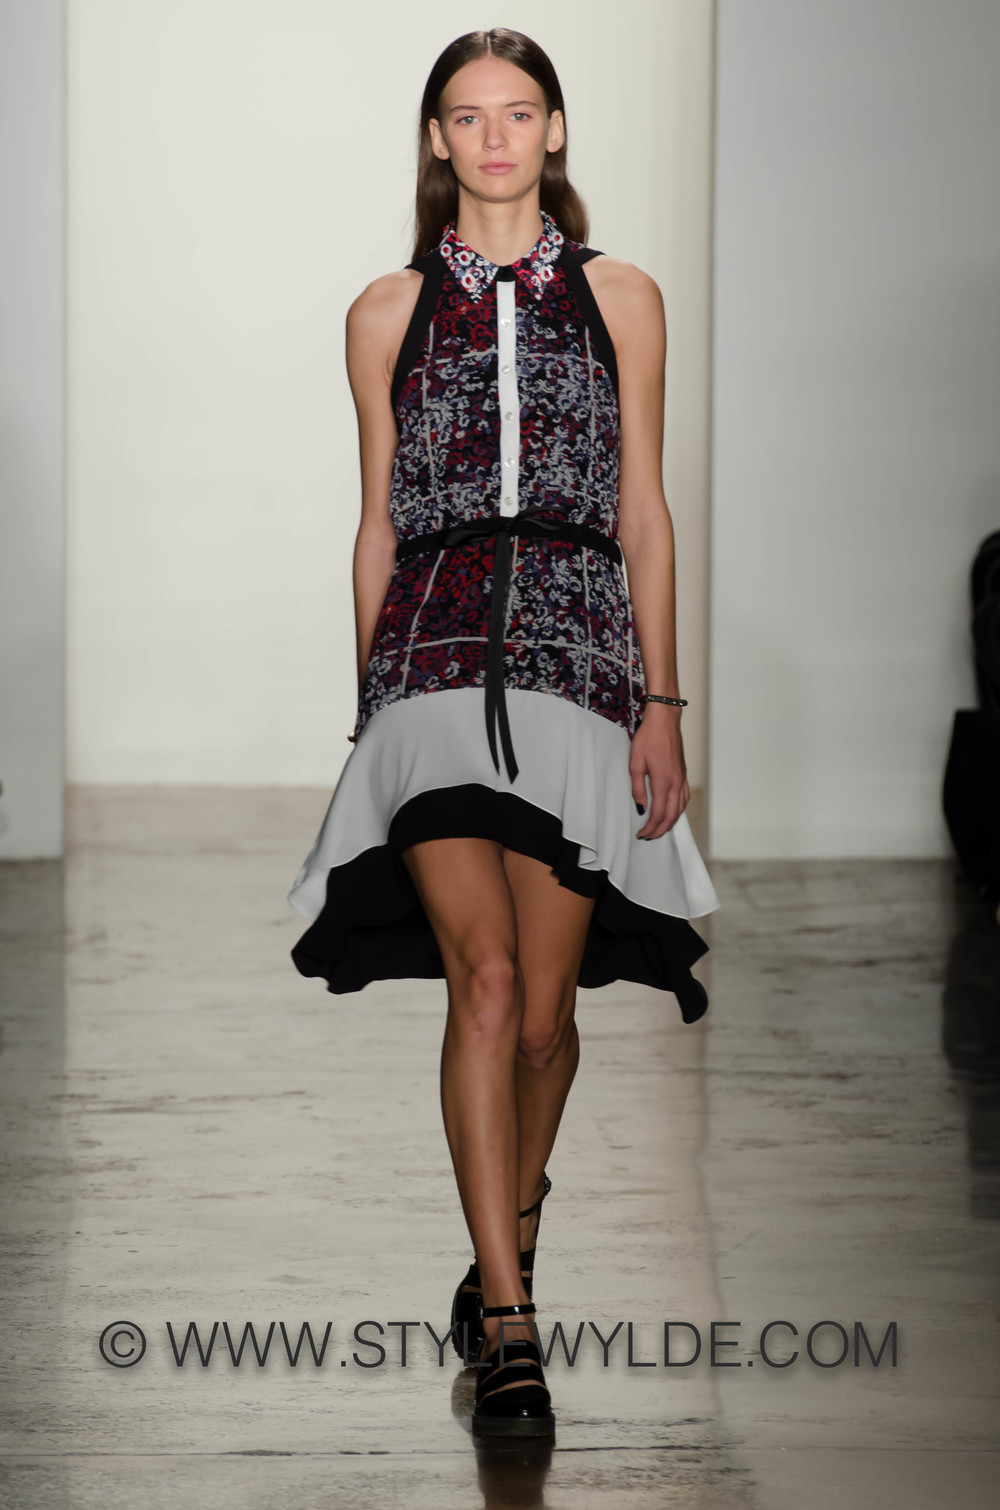 stylewylde_timo_weiland_gallery_ss2014-26.jpg